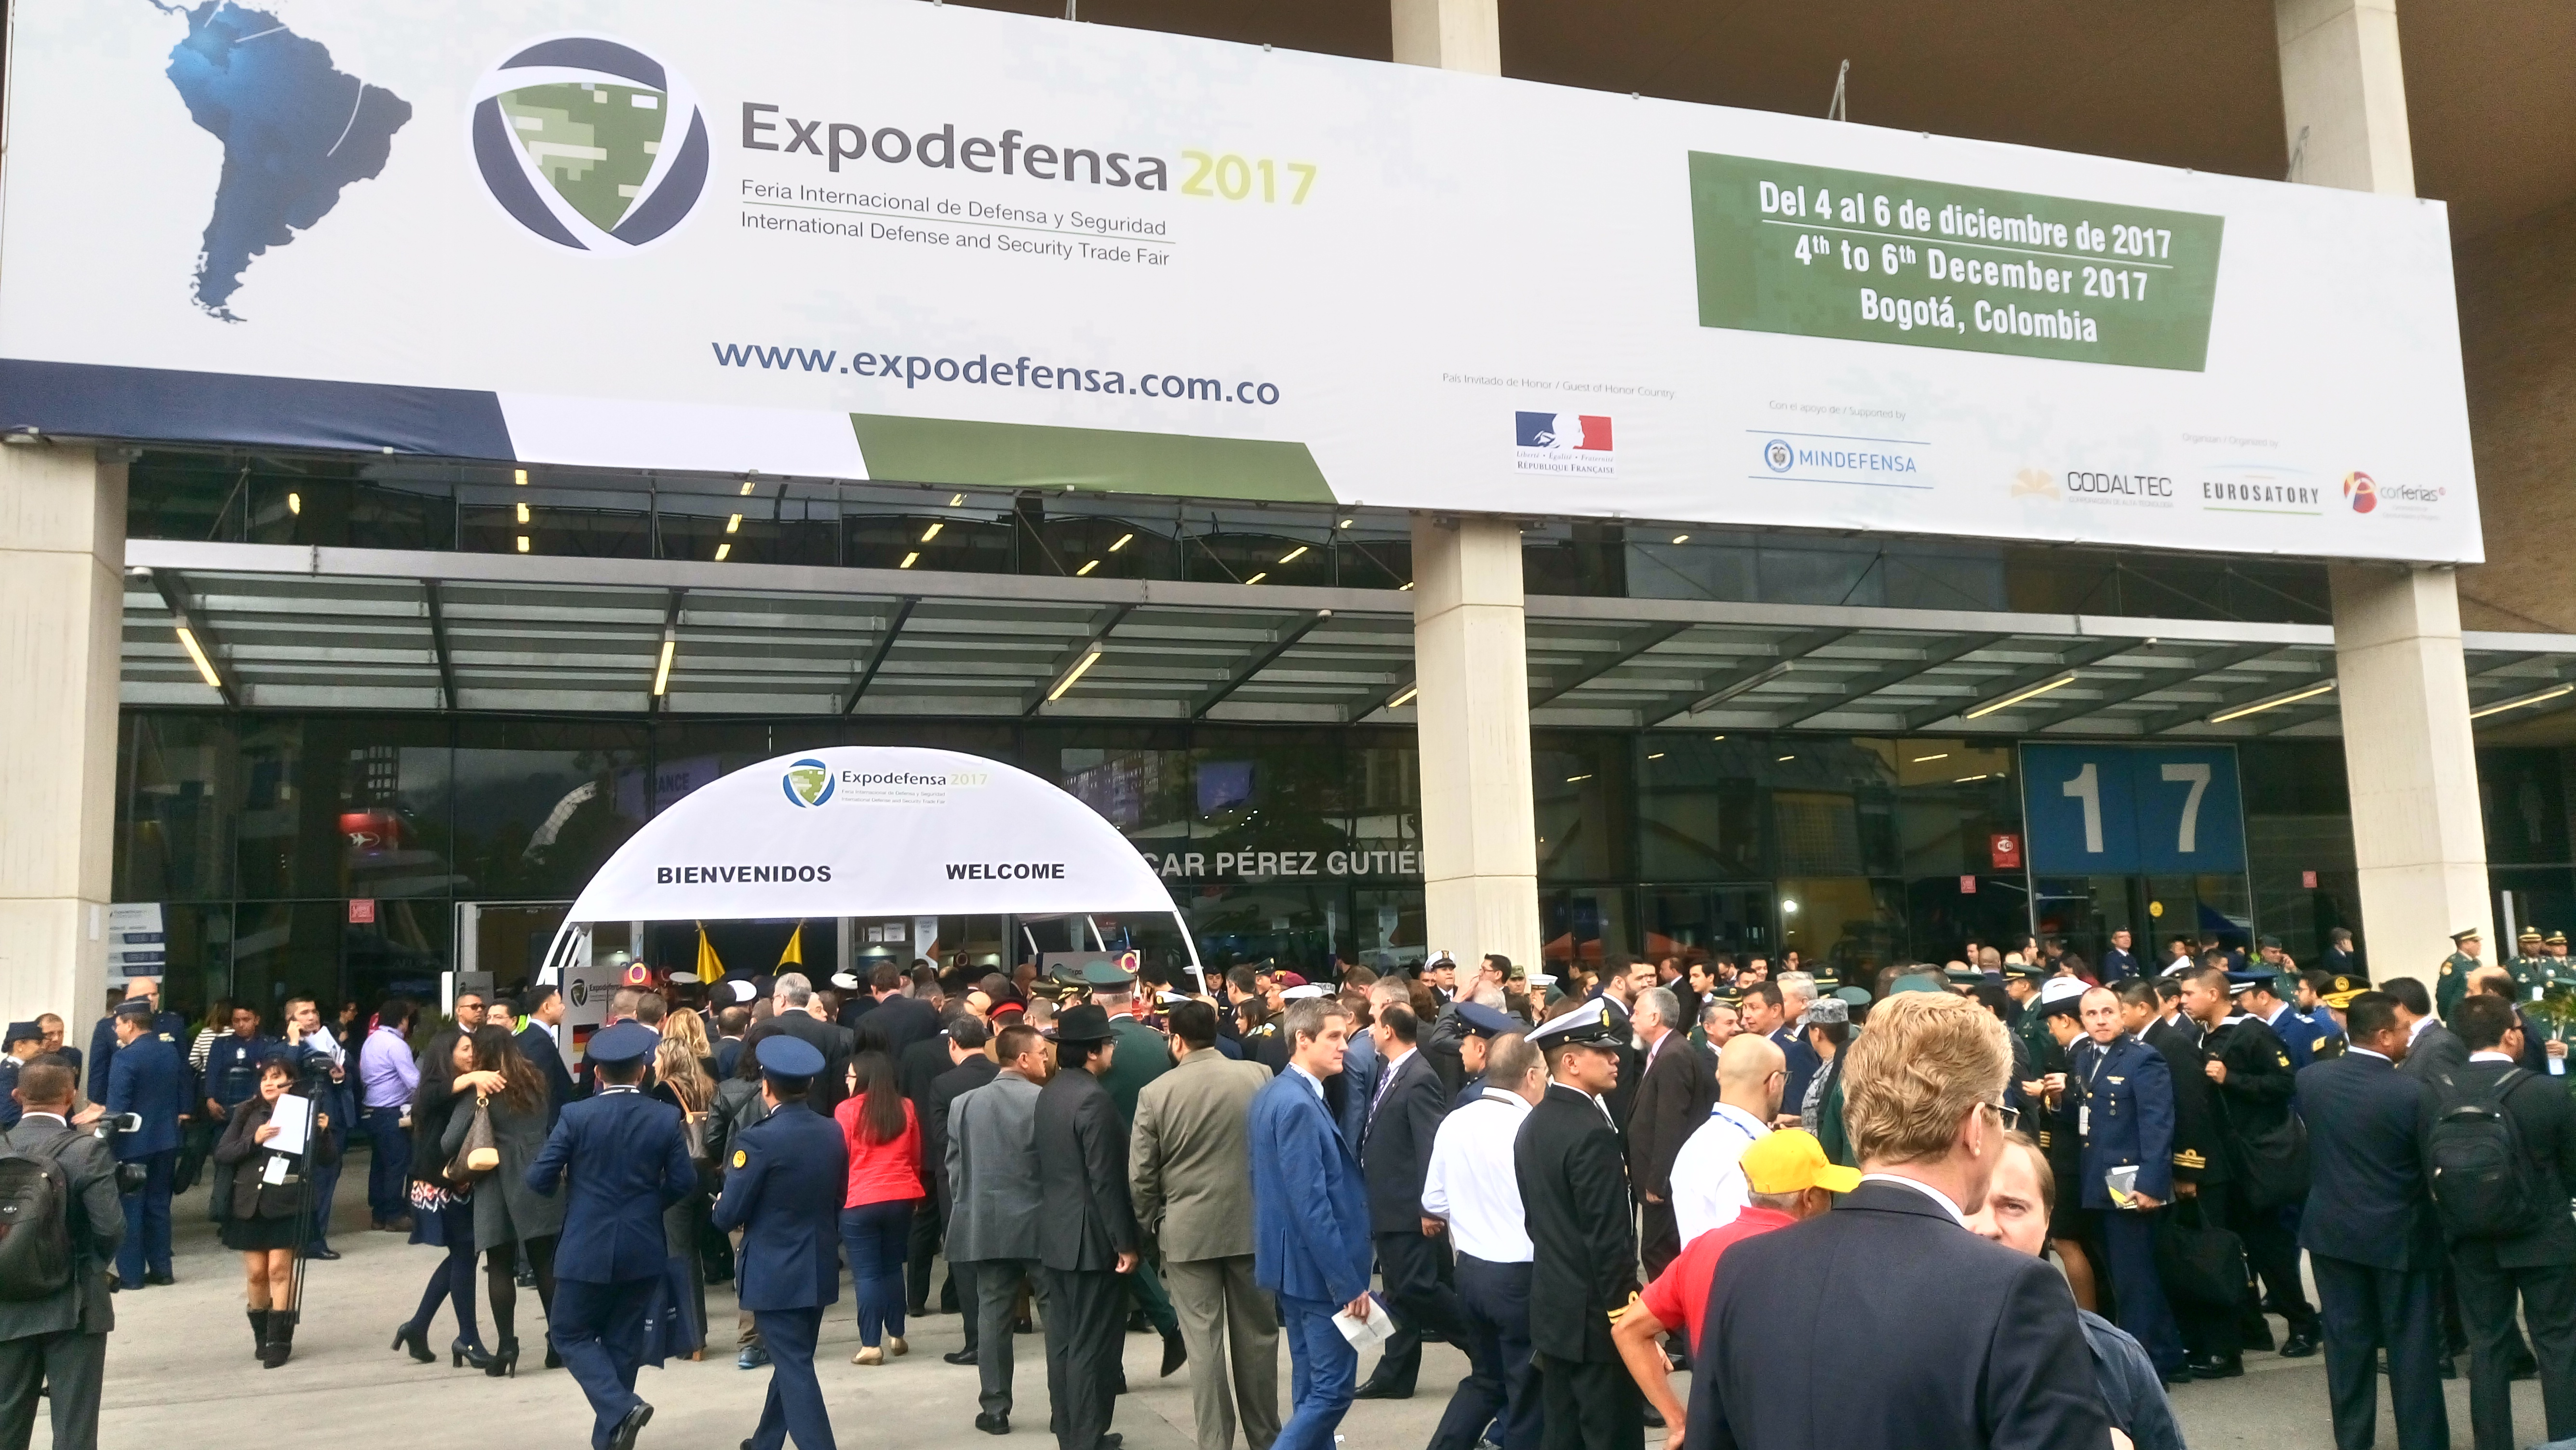 2017 12 04 - Expodefensa 2017 entrance